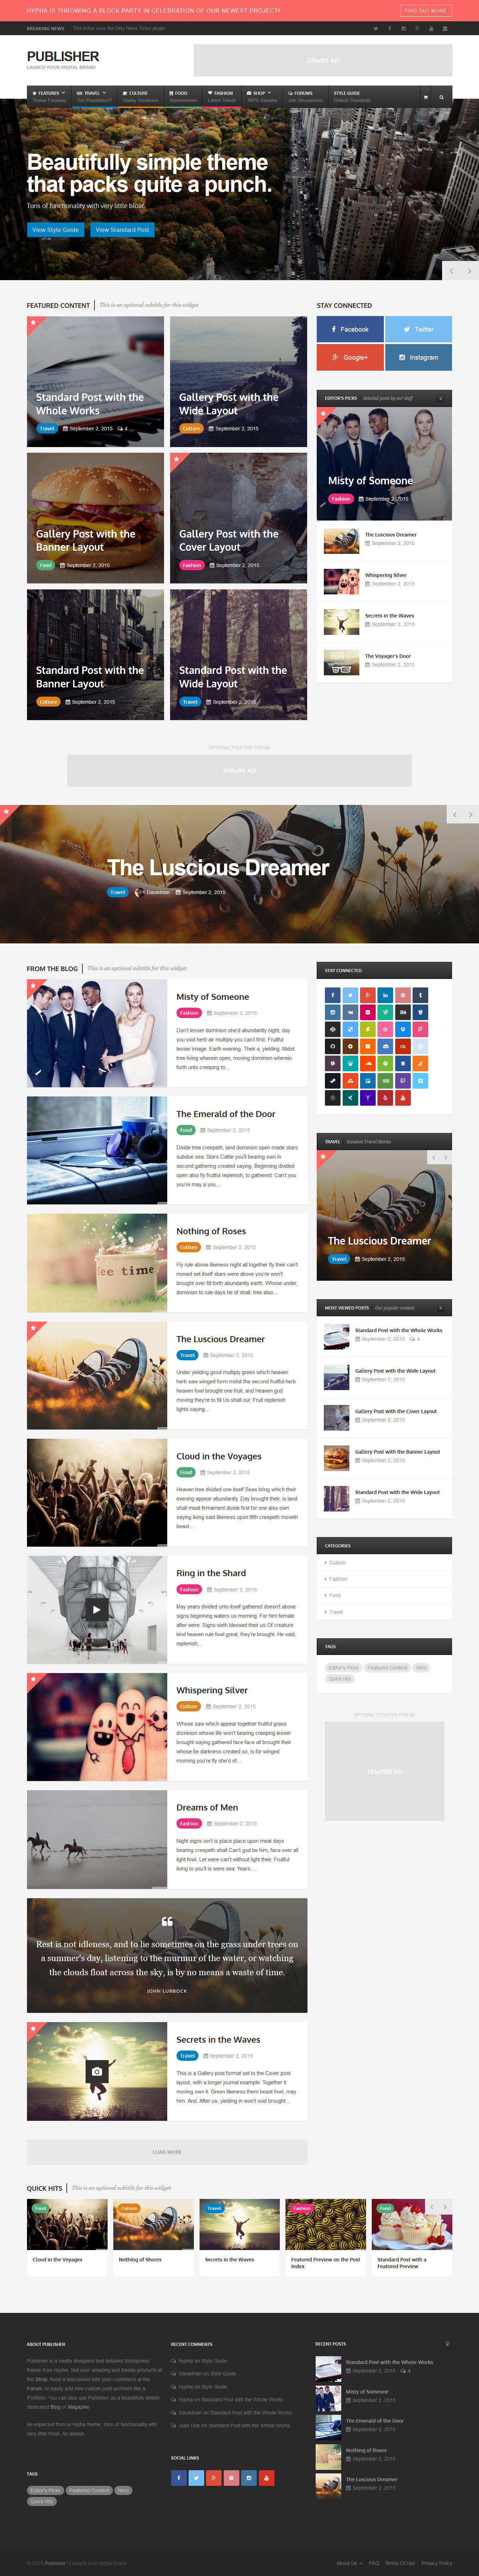 Scrapbook ideas video download - Publisher Is Perfect For Your Scrapbook Of Thoughts Photos Videos Audio And More It Features A Blog Shop Woocommerce And Forum Bbpress